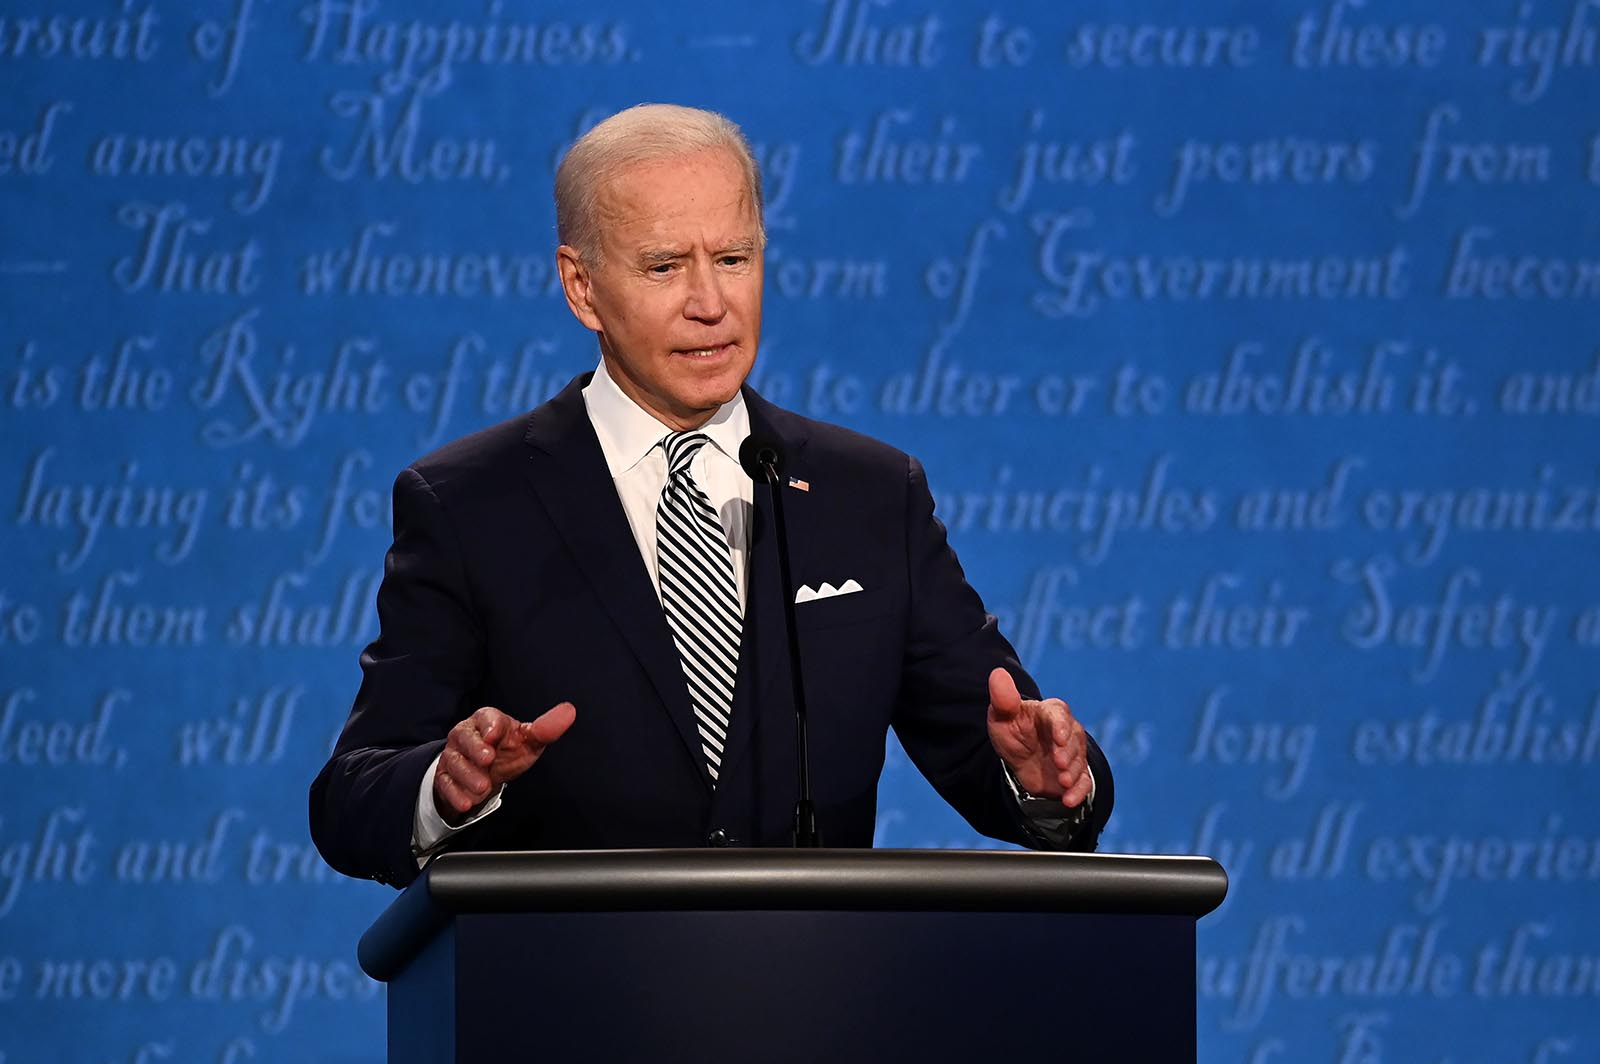 Democratic Presidential nominee Joe Biden speaks during the first presidential debate at the Case Western Reserve University and Cleveland Clinic in Cleveland, Ohio on September 29.